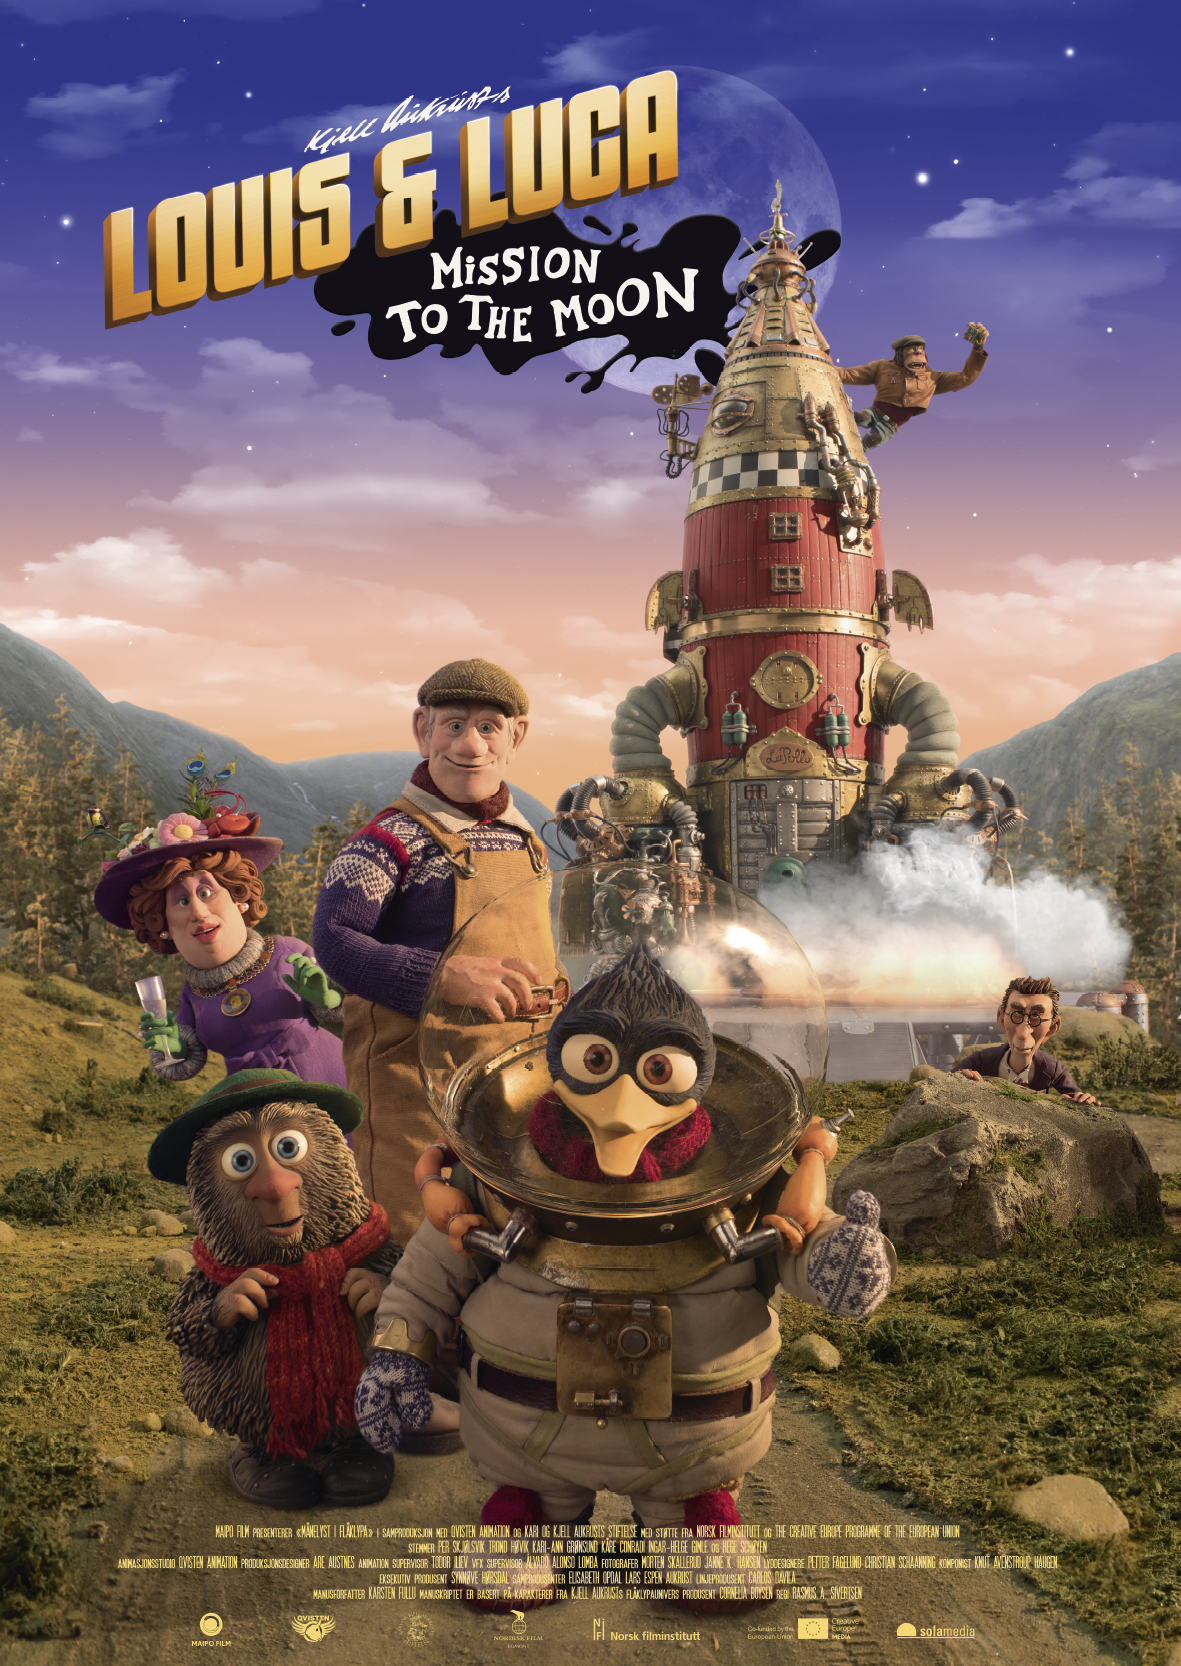 Louis & Luca - Mission to the Moon (2018) WEBRip 720p